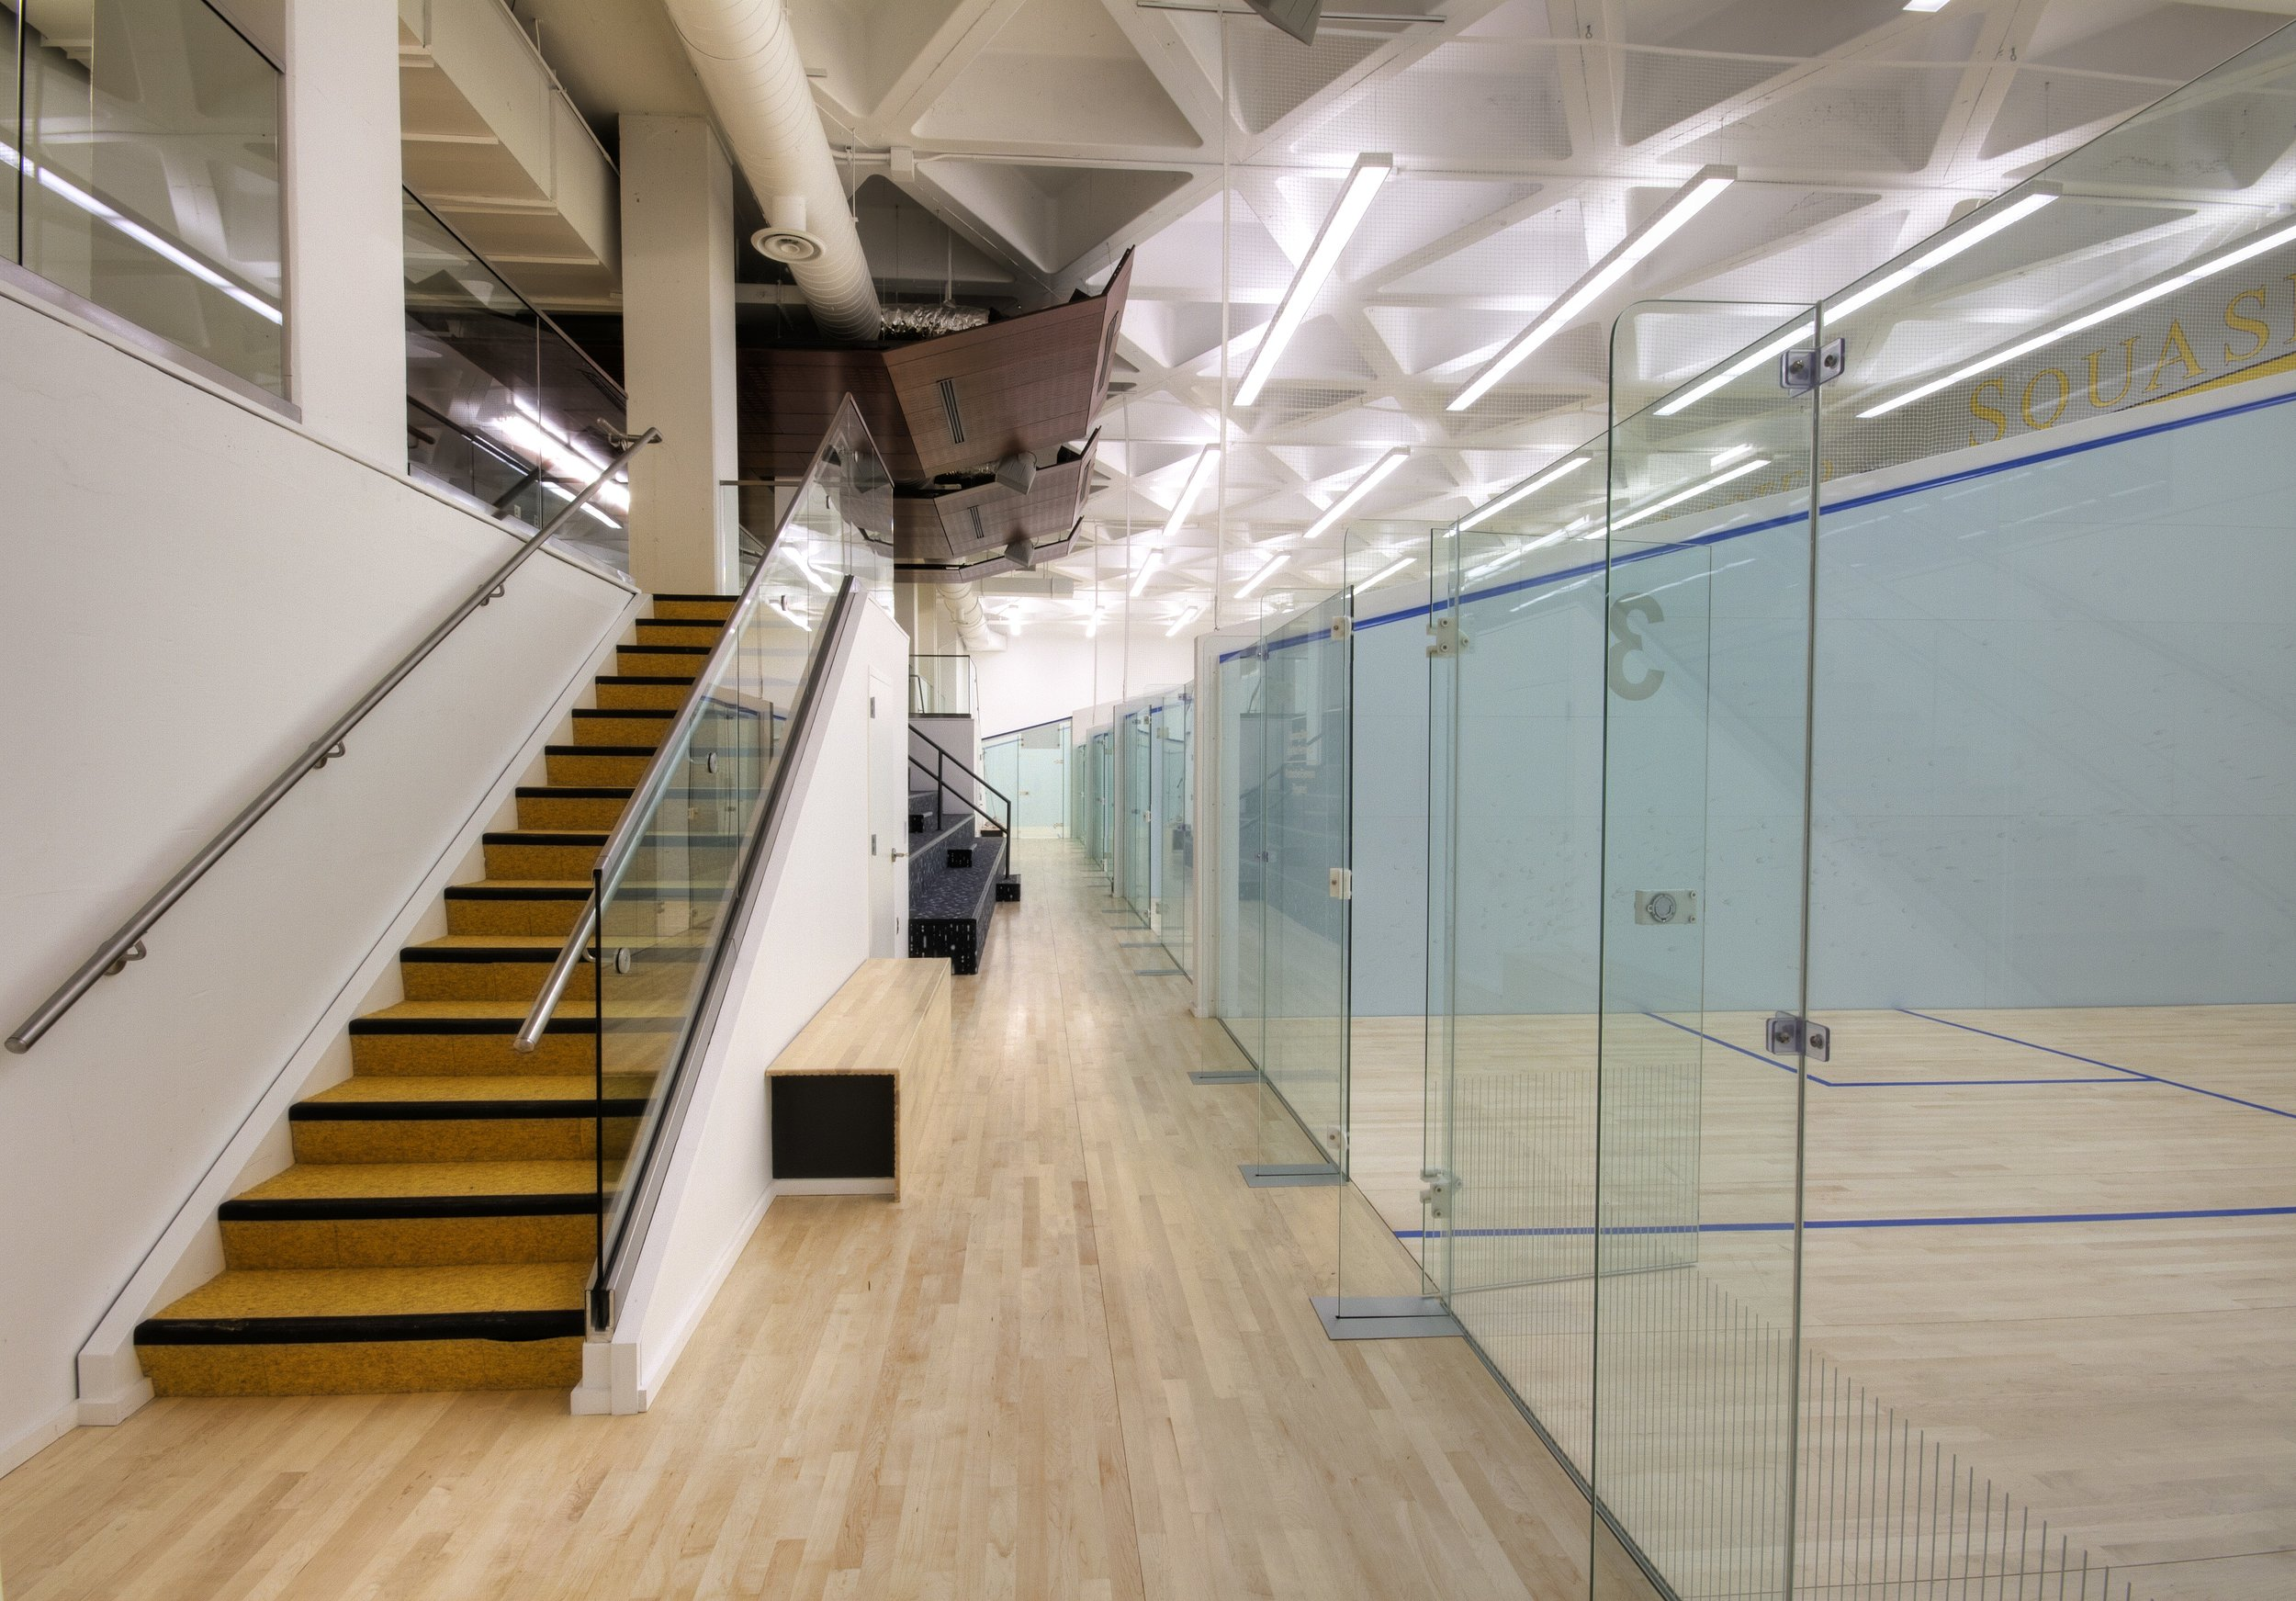 DREXEL UNIVERSITY SQUASH CENTER ON GLASS - OOMBRA ARCHITECTS